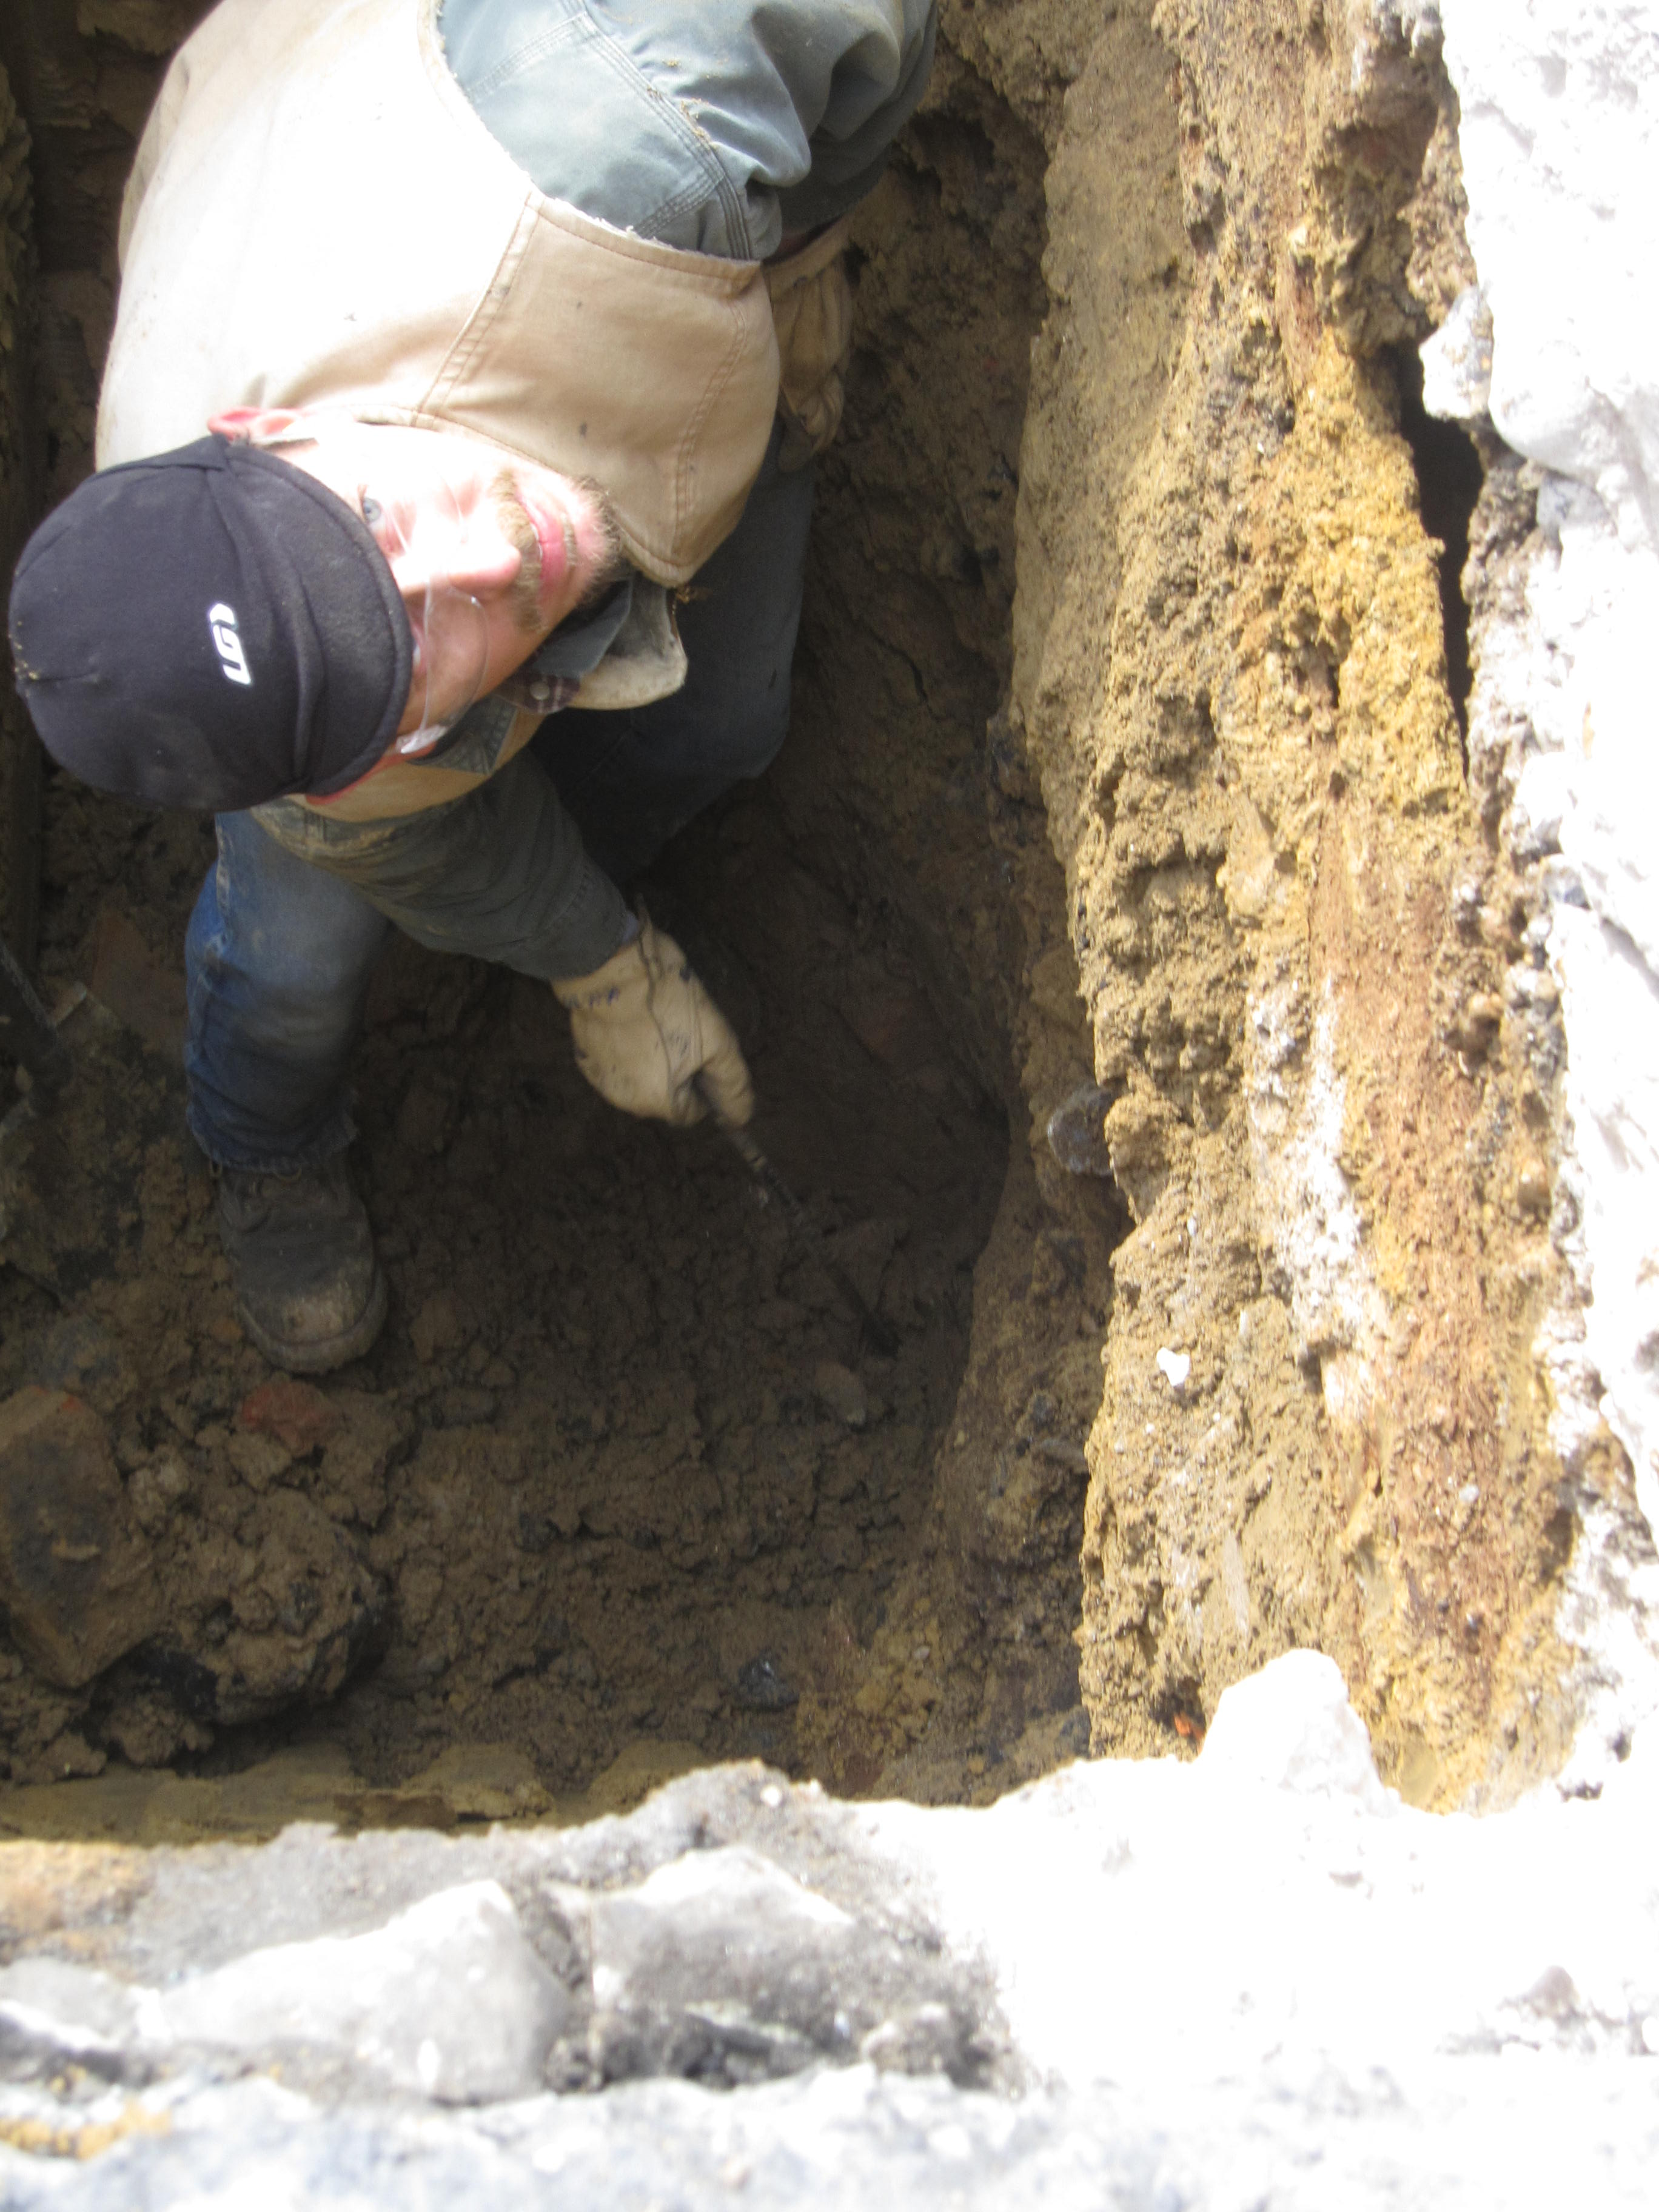 Curb trap main drain sewer lateral and water service